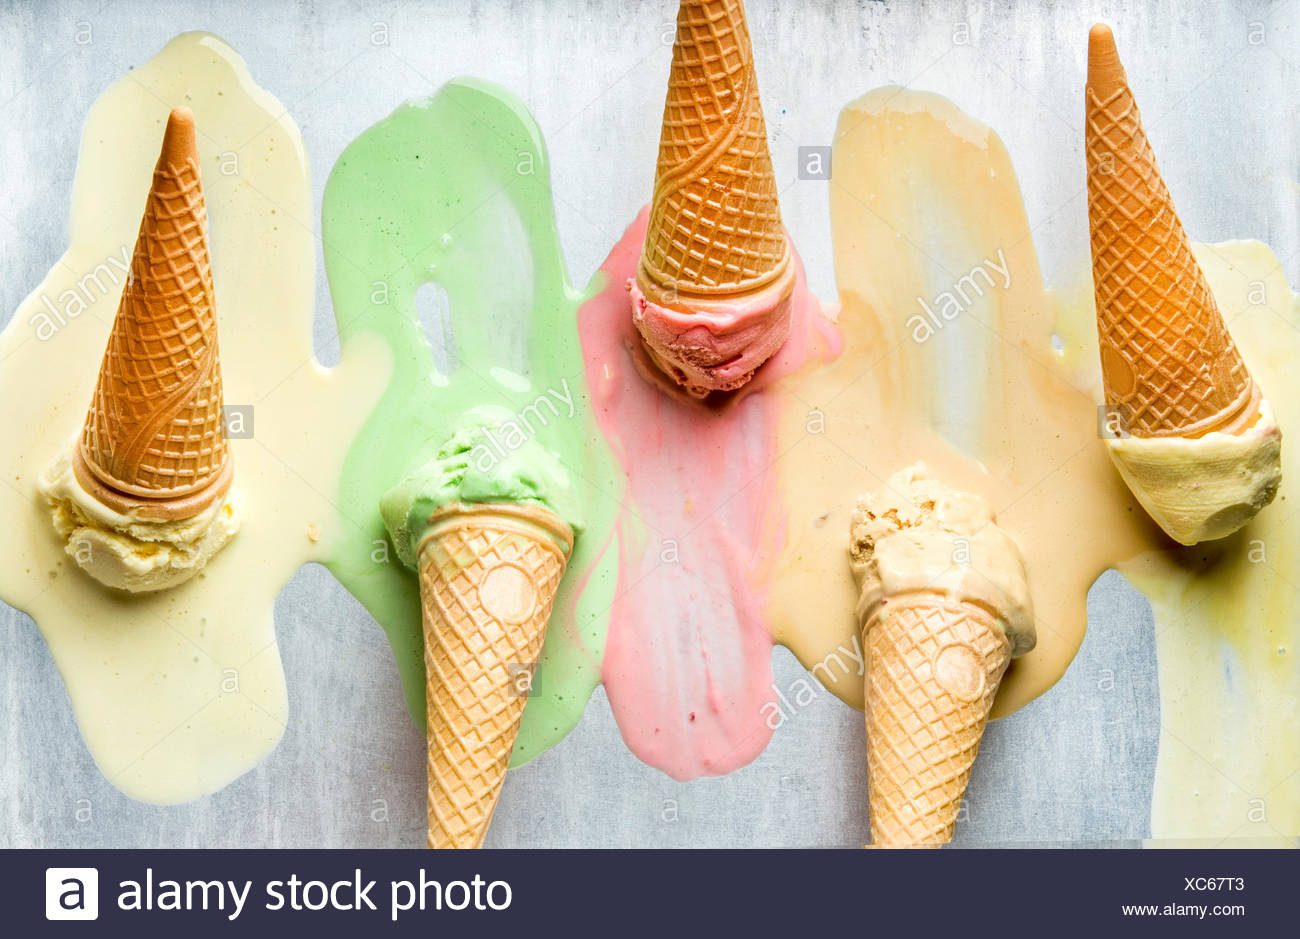 Colorful ice cream cones of different flavors. Melting scoops. Top view, steel metal background Stock Photo